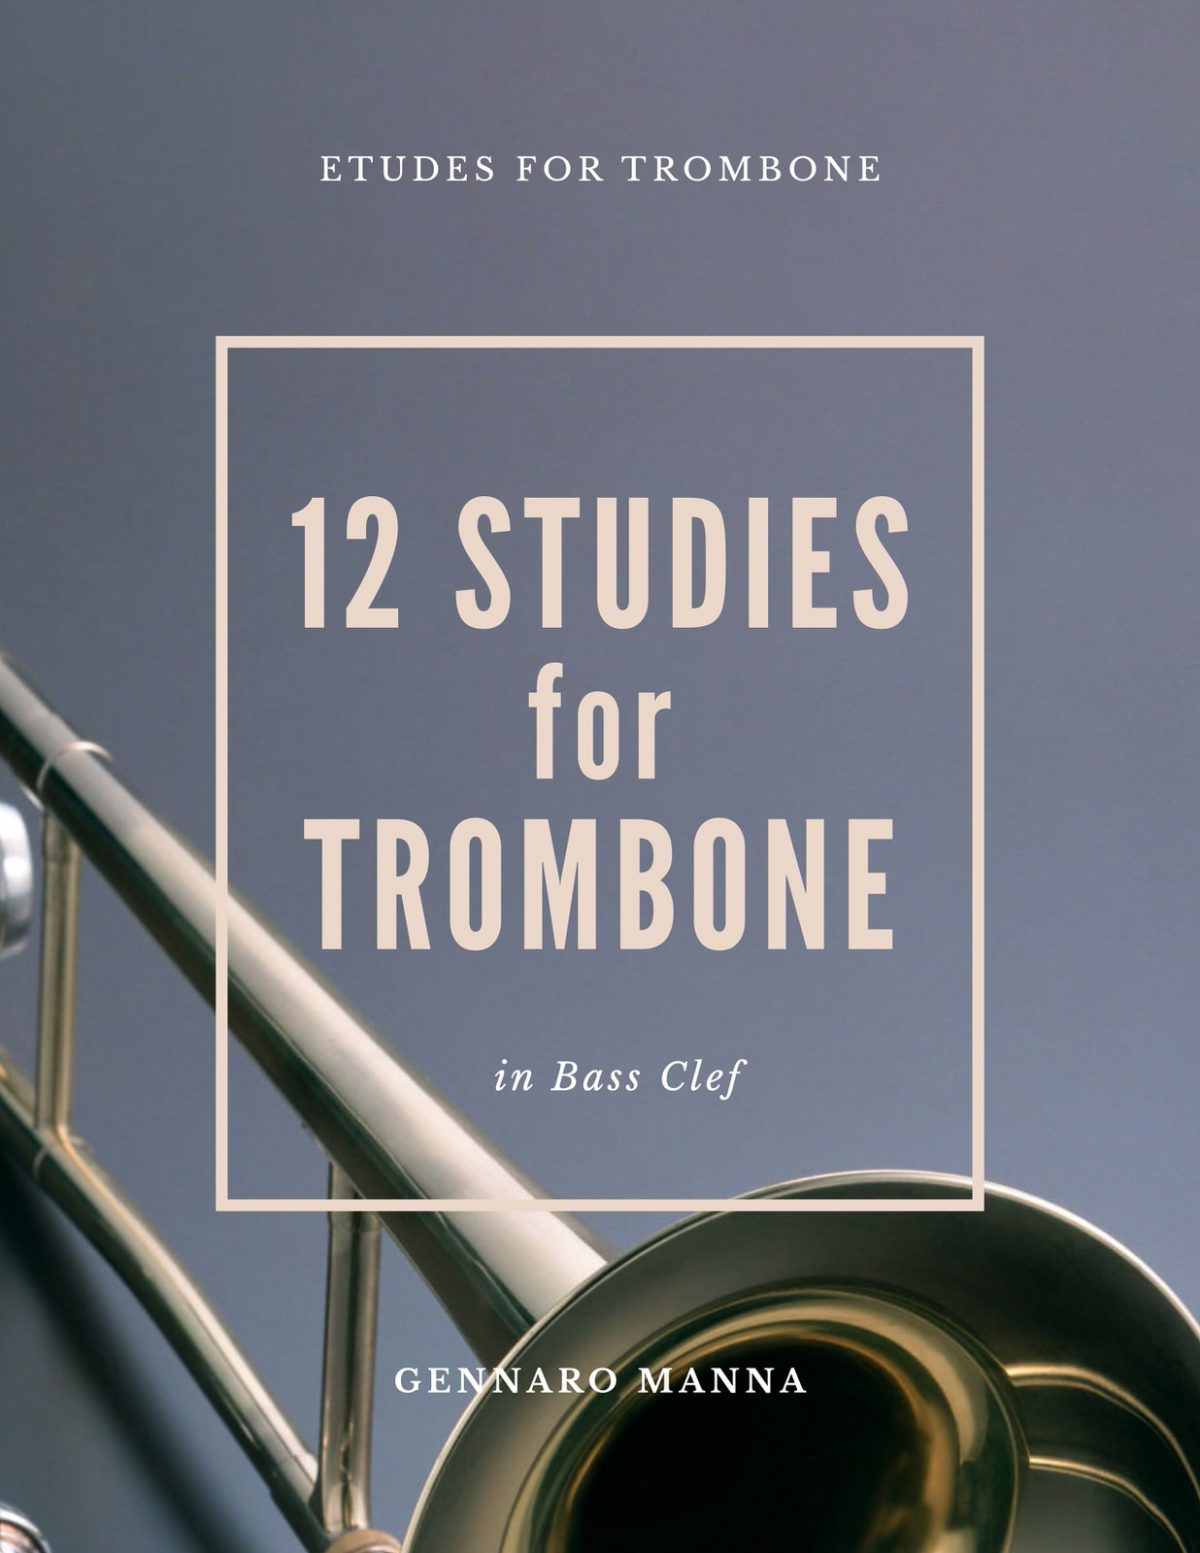 Manna, 12 Studies for Trombone-p01